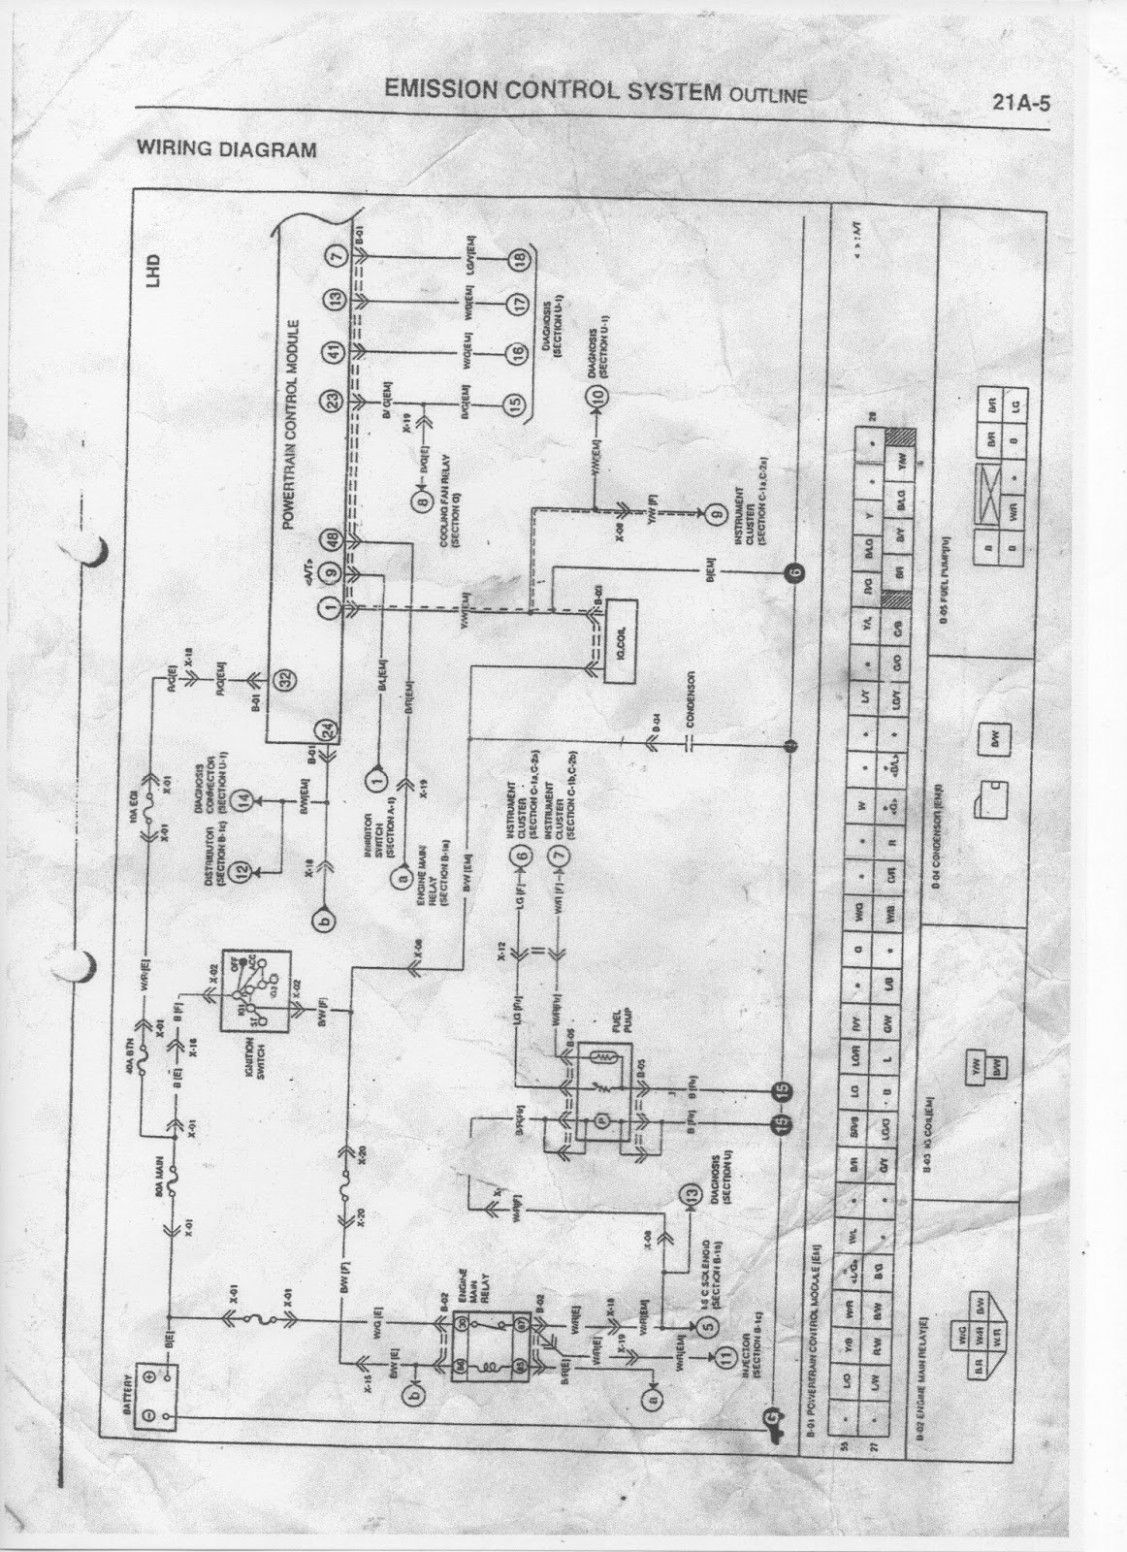 FA4DB Hijet Mini Truck Wiring Diagrams | Wiring Resources daihatsu hijet  engine diagram uk | MobilPinterest